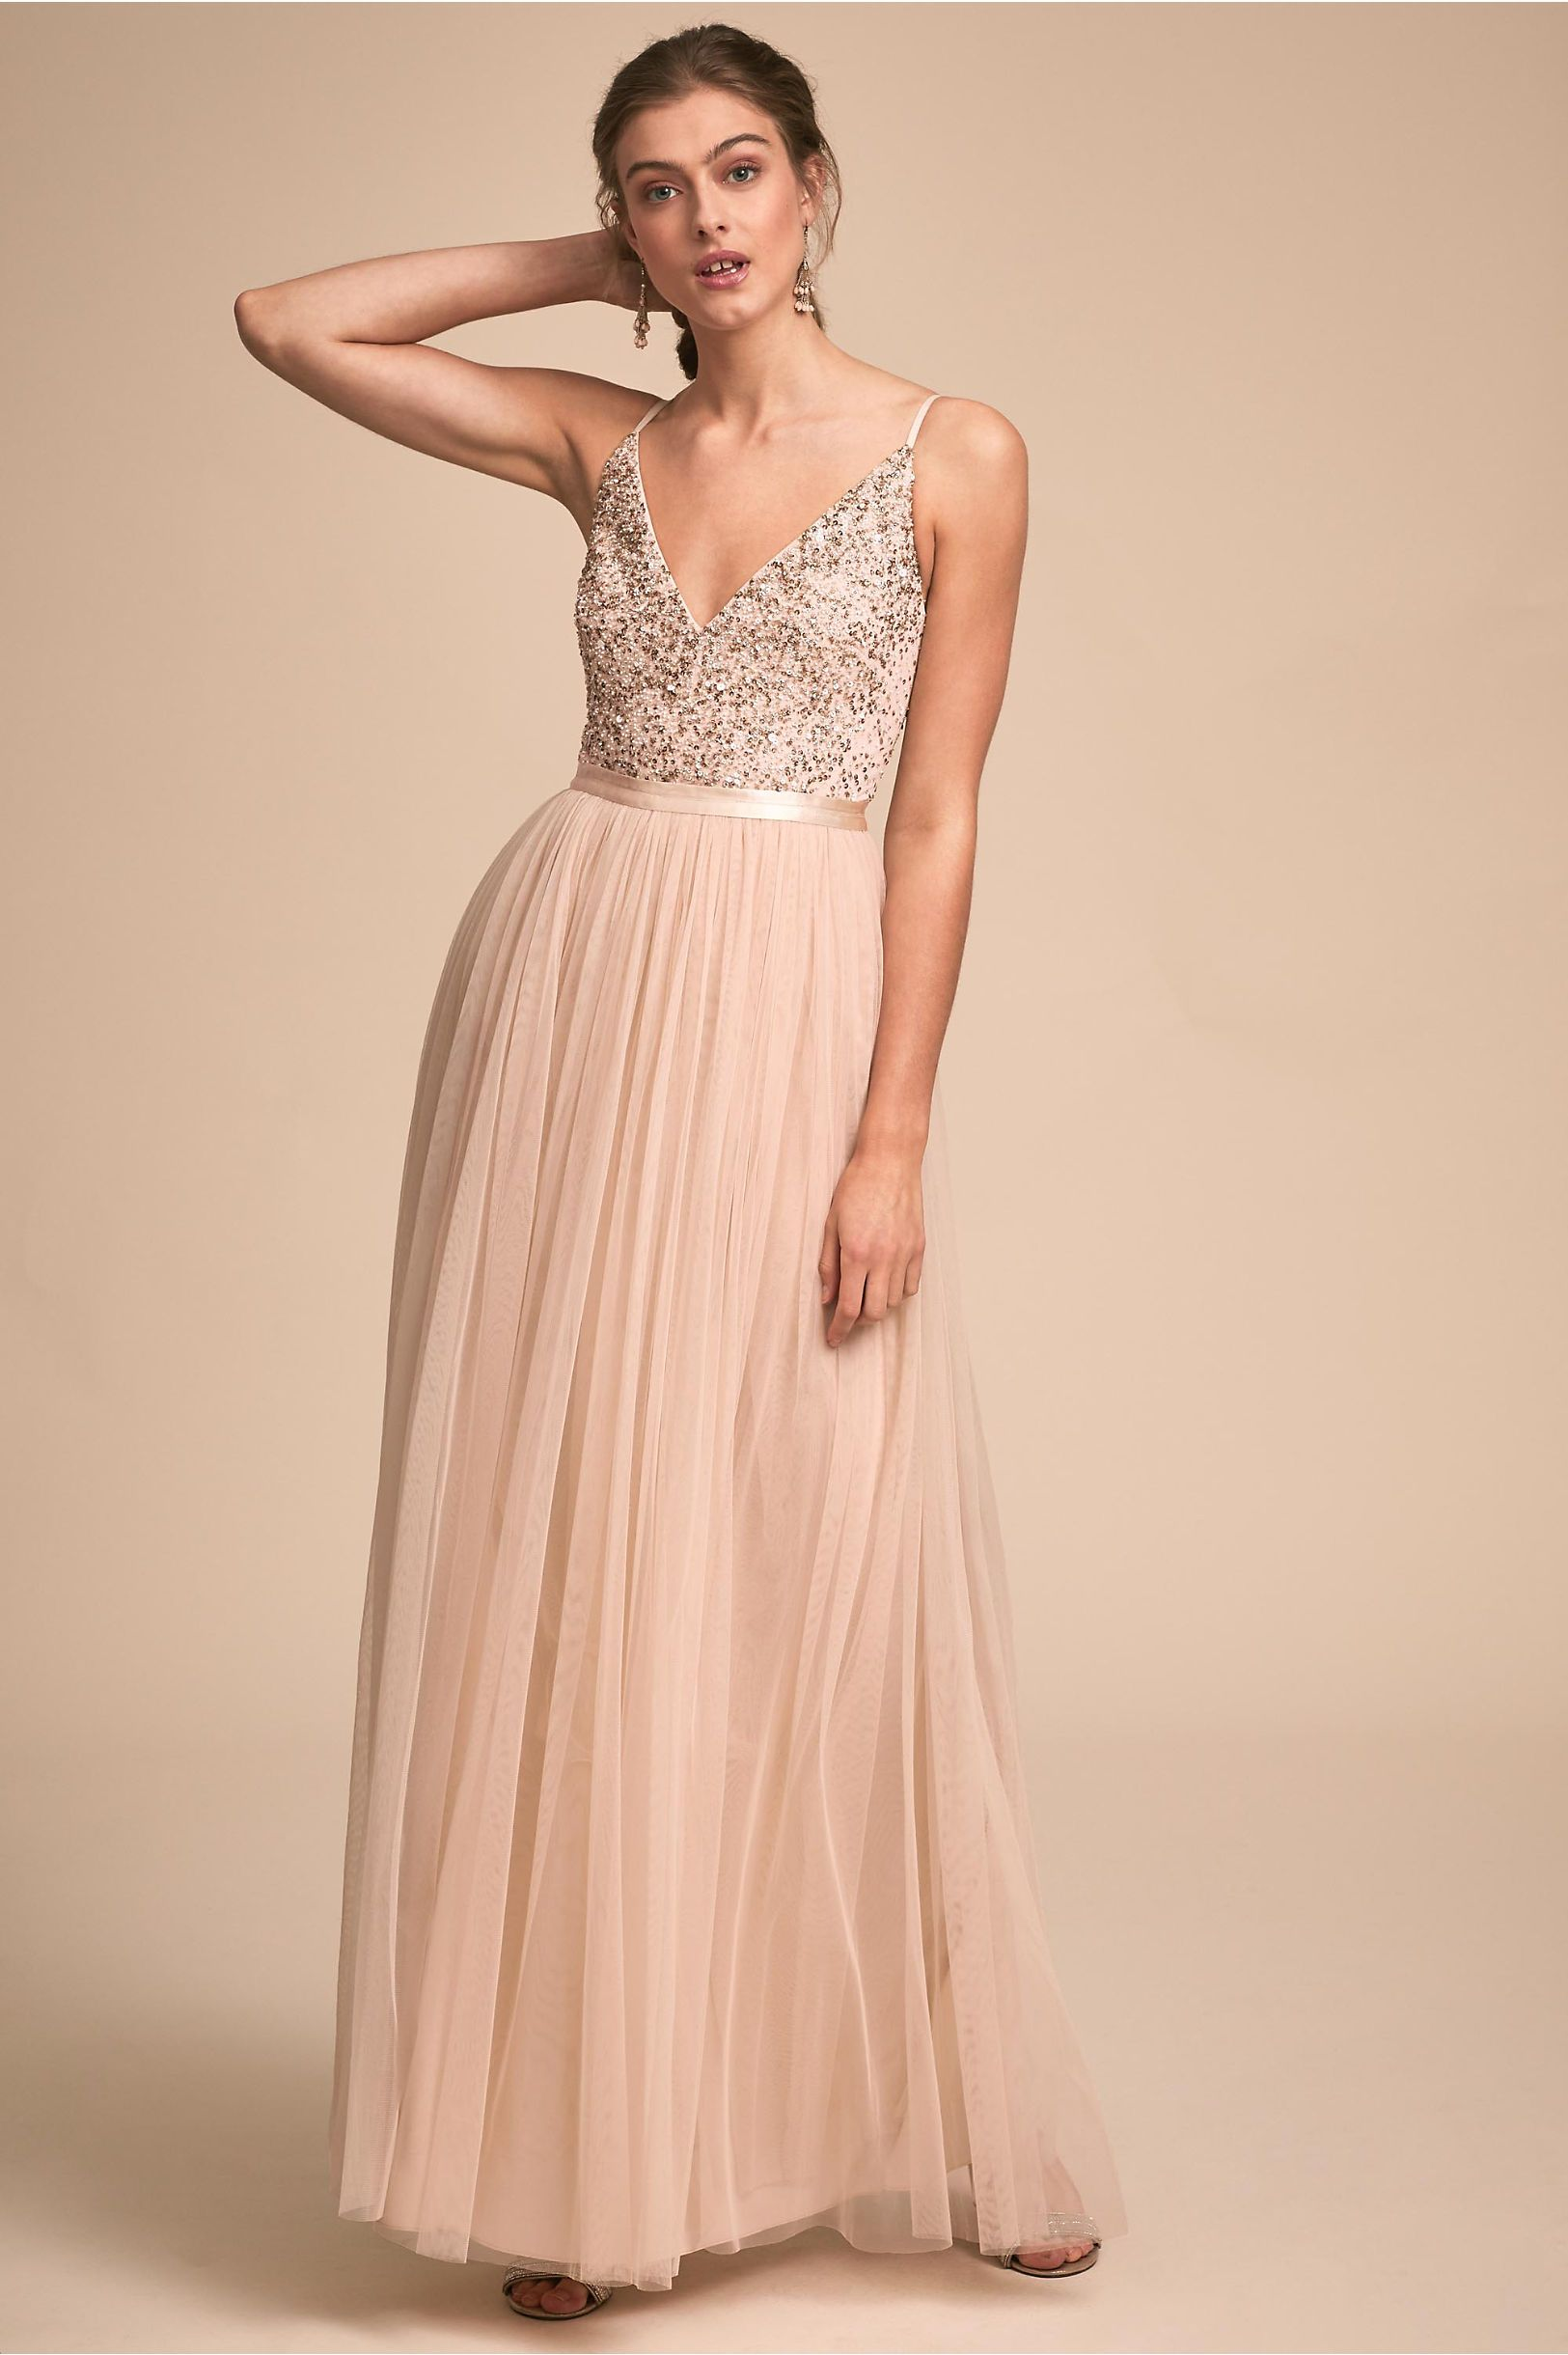 f8619b633b90 Avery Dress in 2019 | Bridesmaids | Bhldn bridesmaid dresses ...